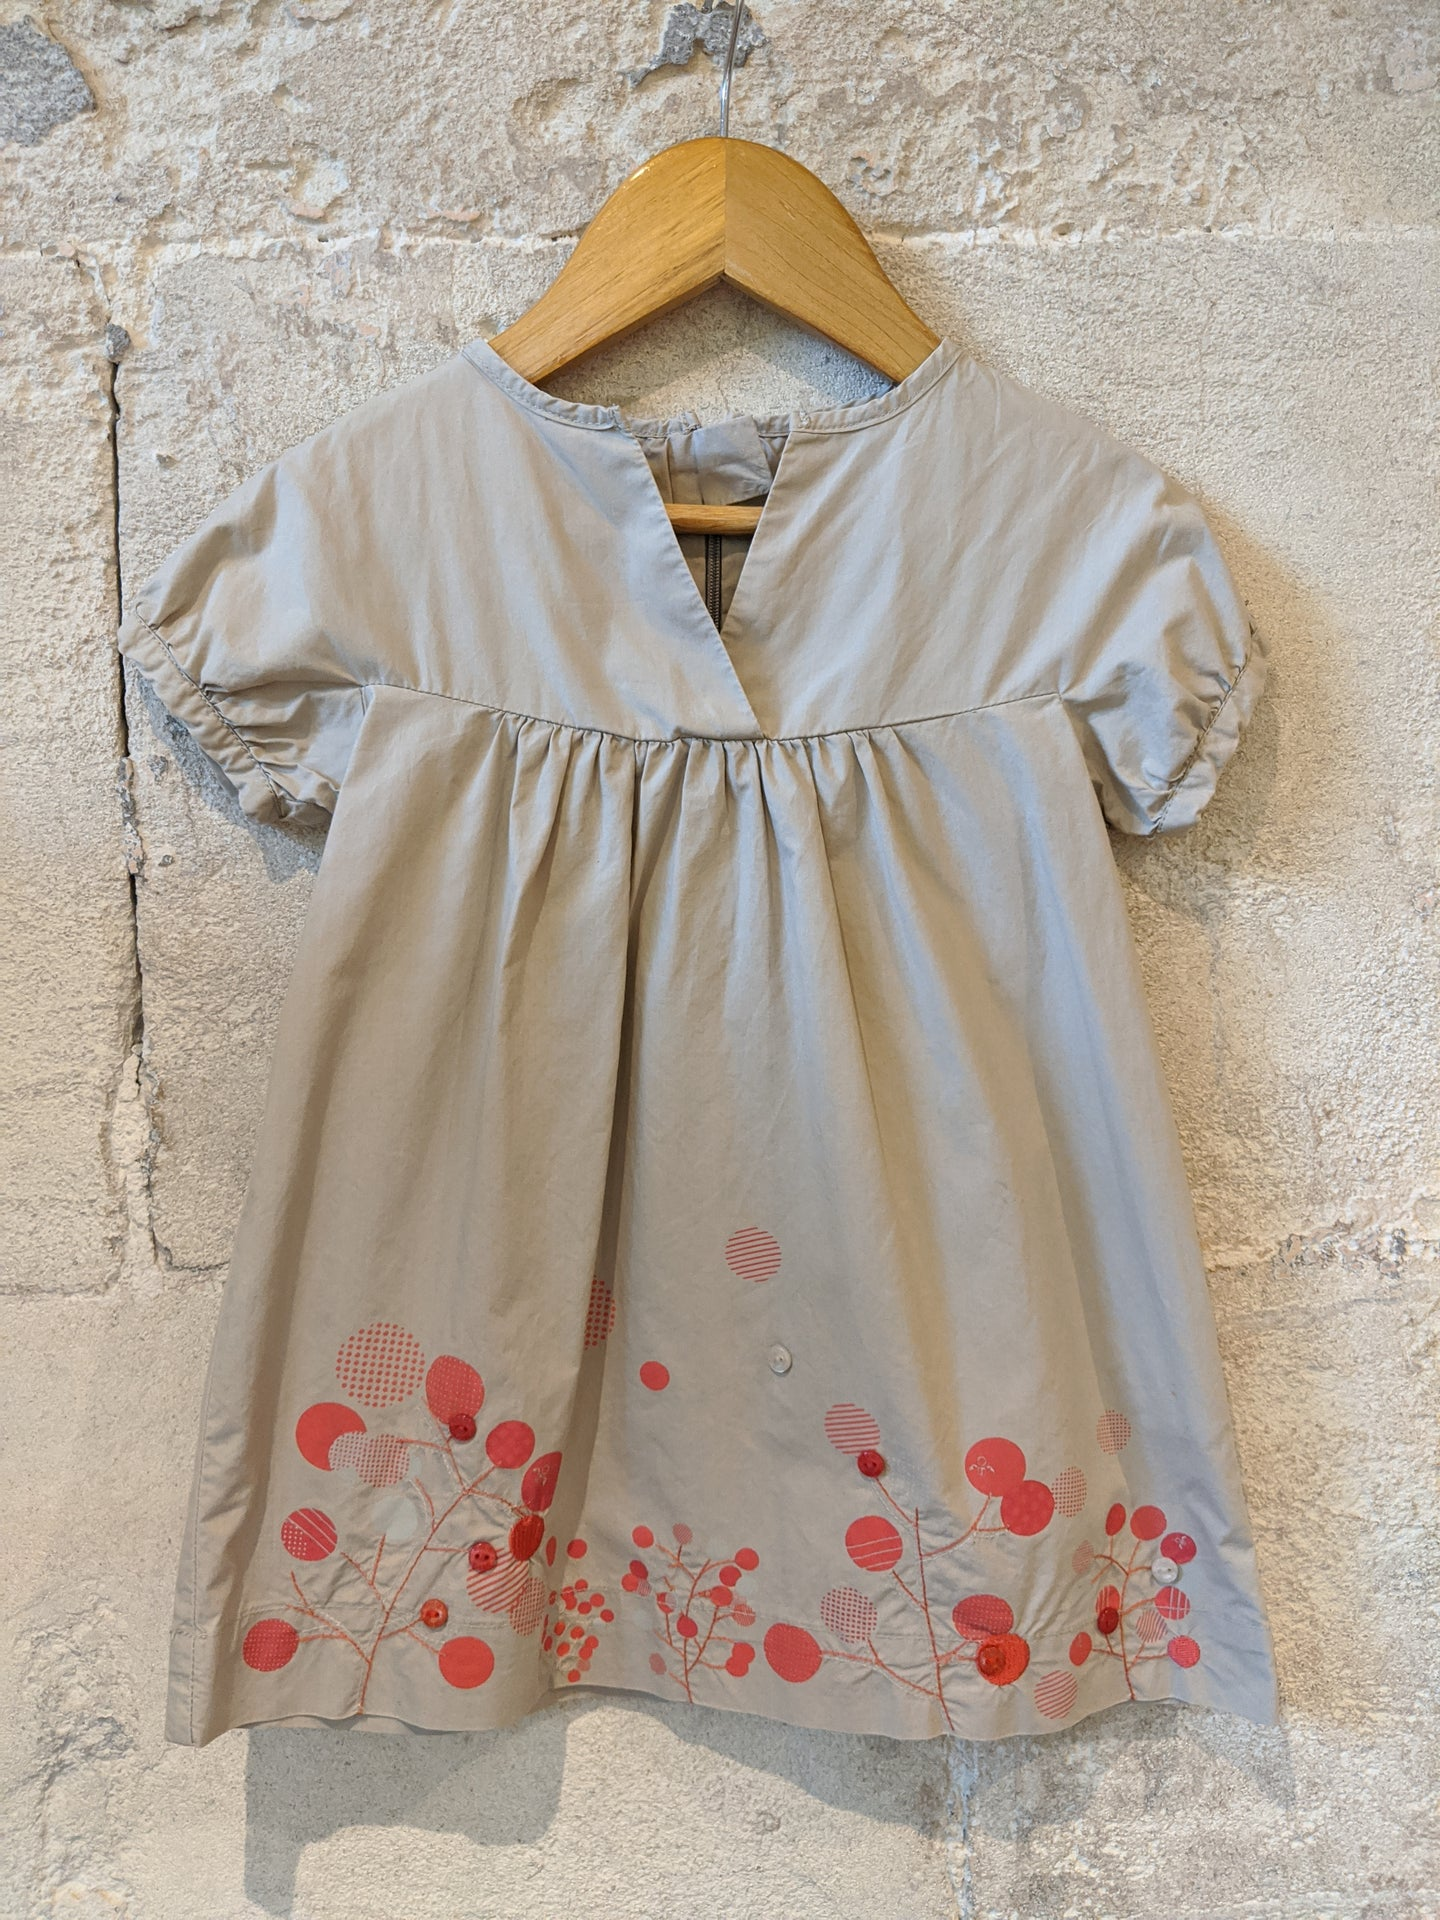 Beautifully Shaped A-Line Soft Coloured Dress 18 Months